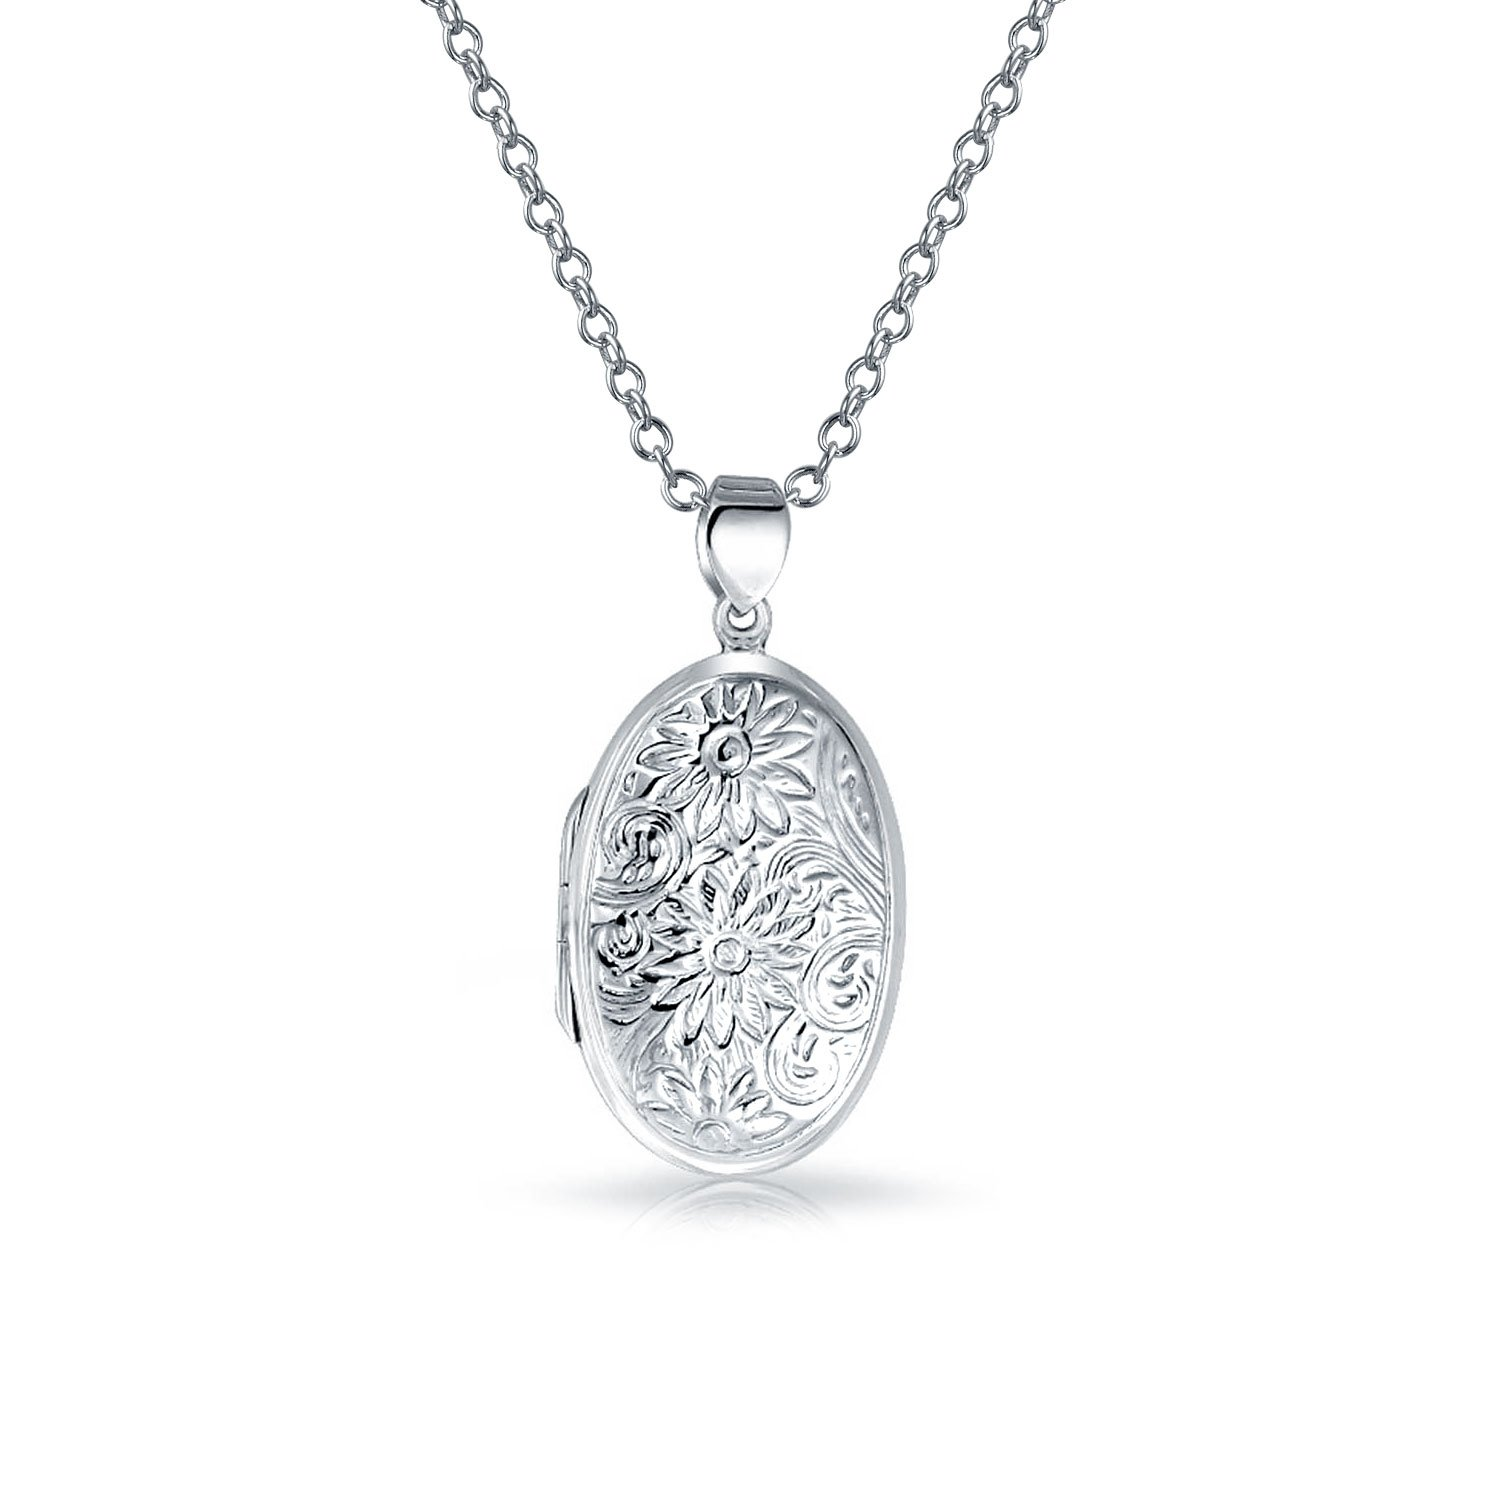 Bling Jewelry Sunflower Oval Locket Pendant Sterling Silver Necklace 18 Inches PMR-L10239